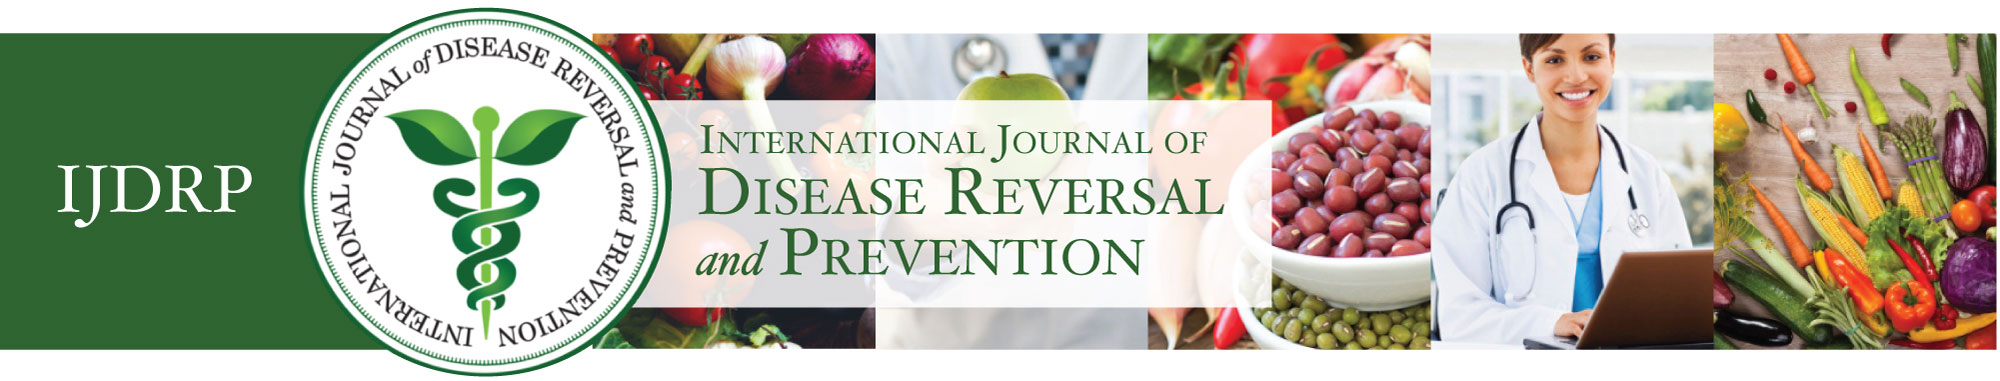 International Journal of Disease Reversal and Prevention